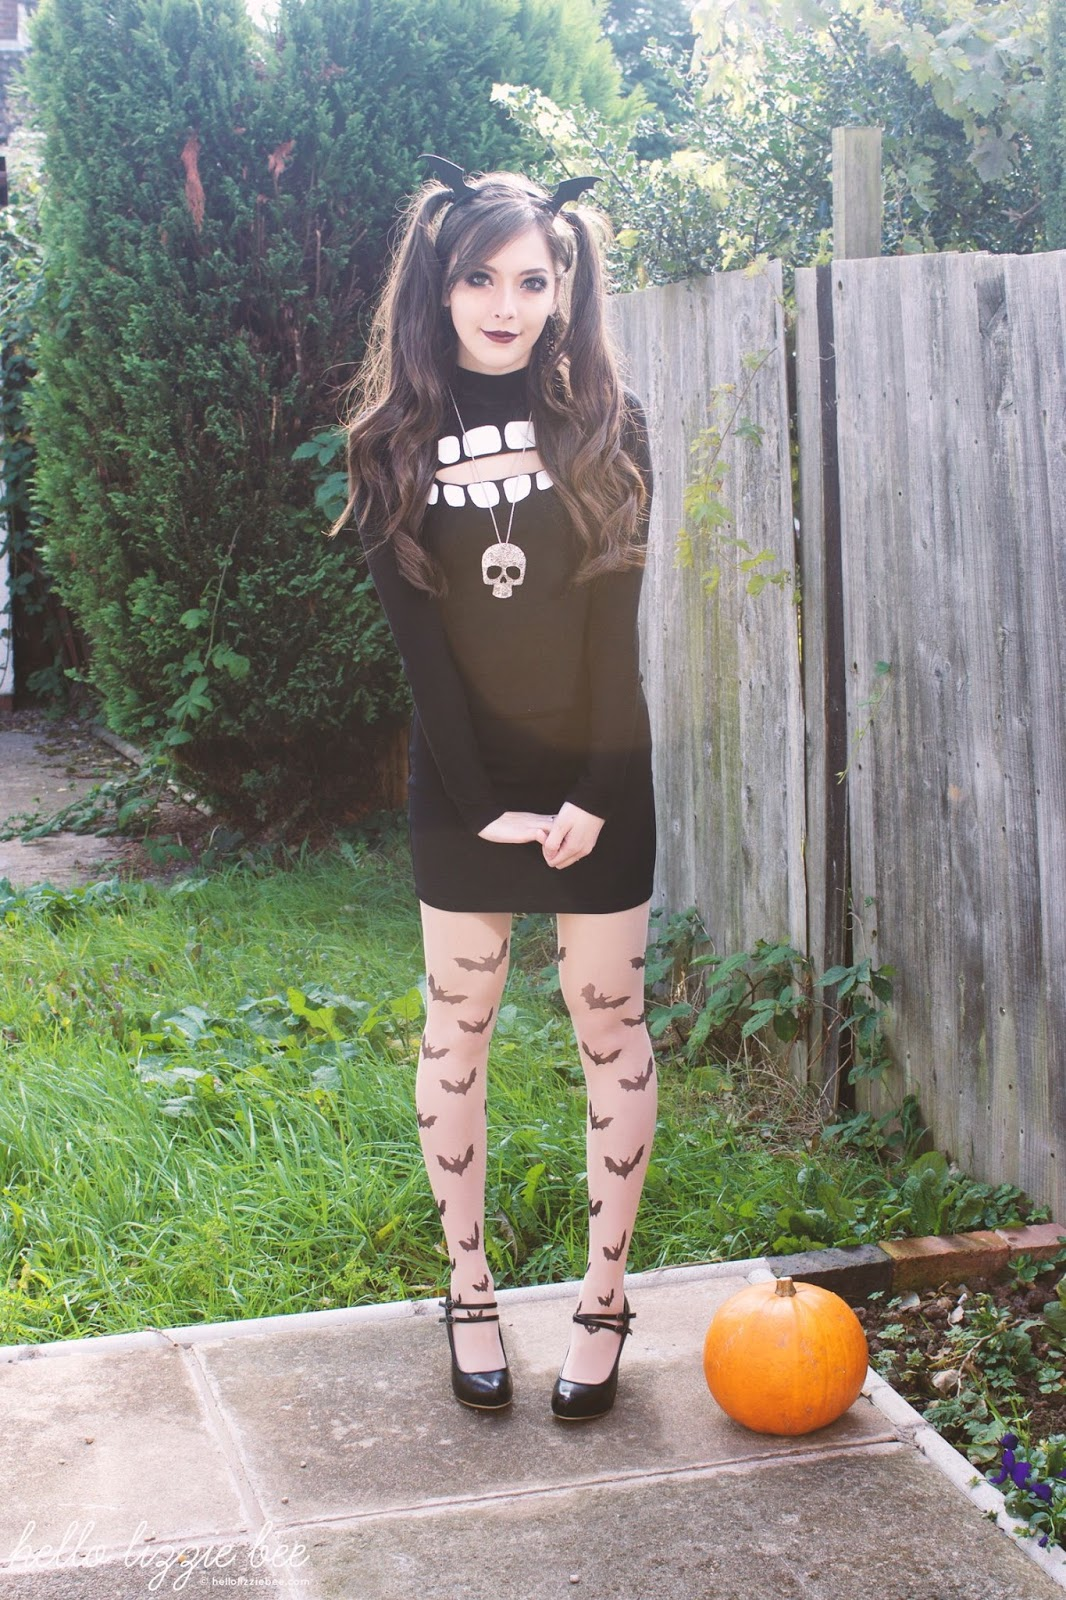 kawaii bat outfit, jfashion, nugoth